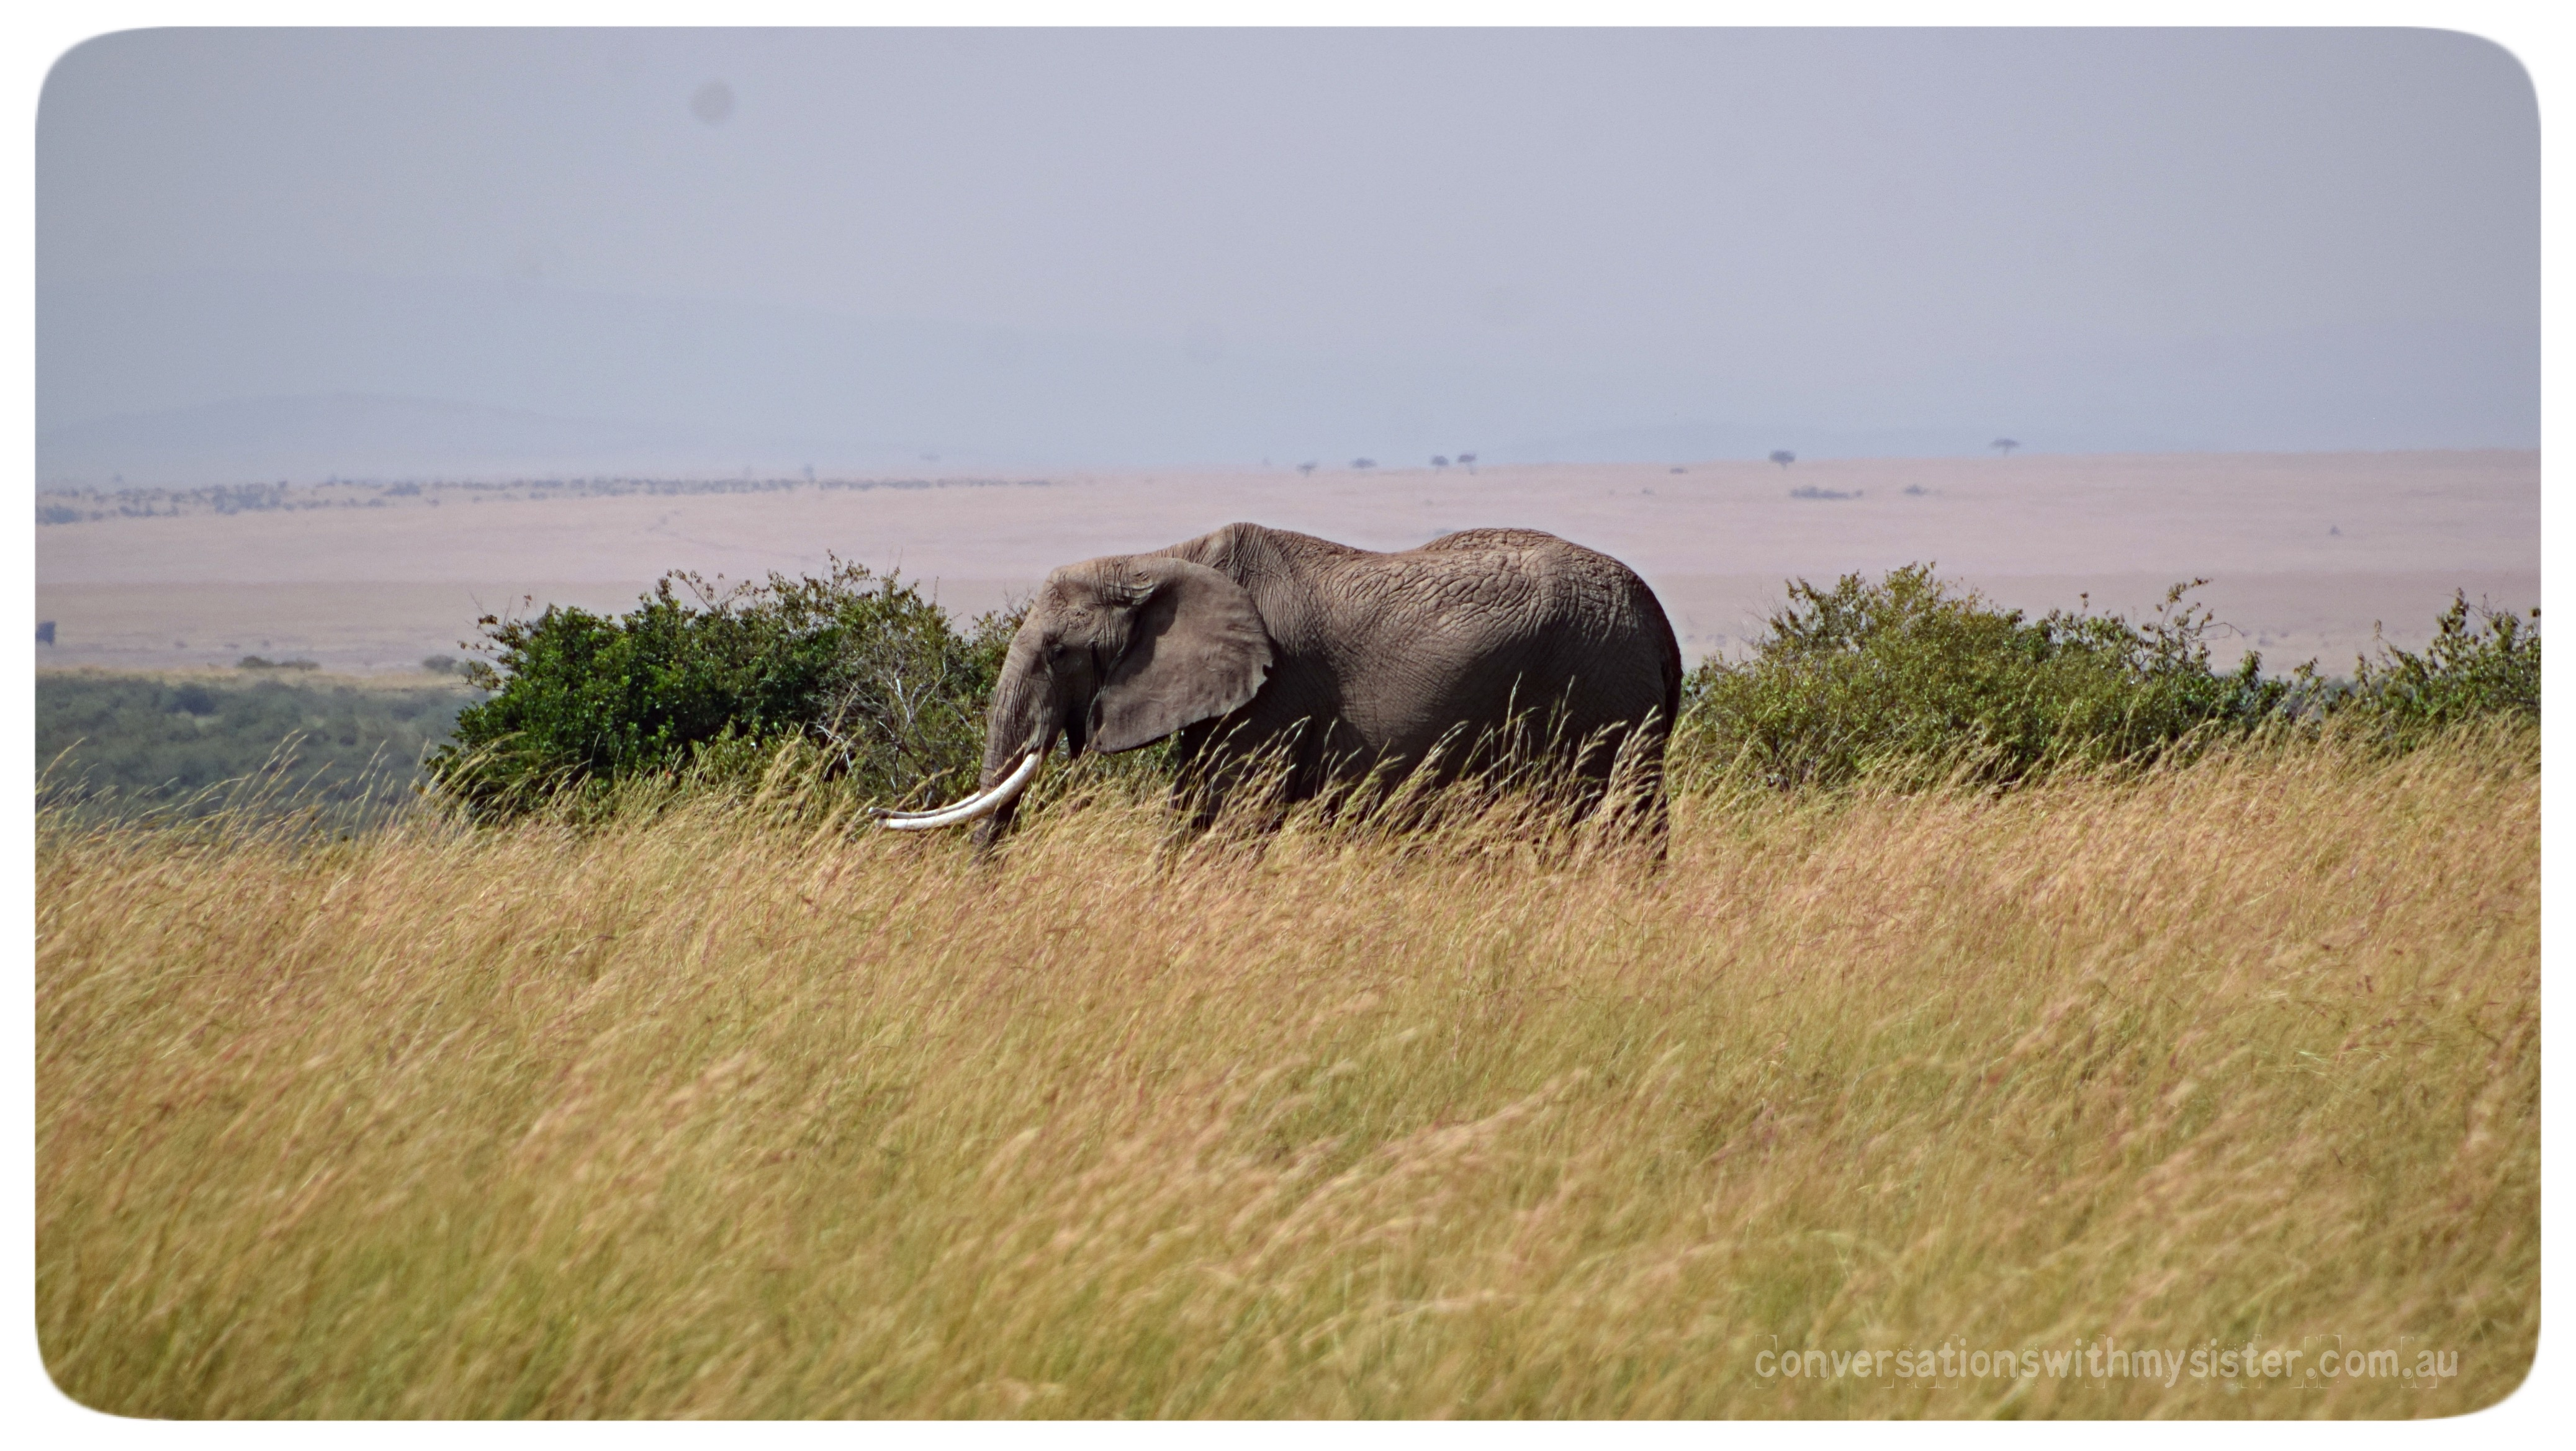 An African Safari in the Masai Mara - with Kids_conversationswithmysister.com.au